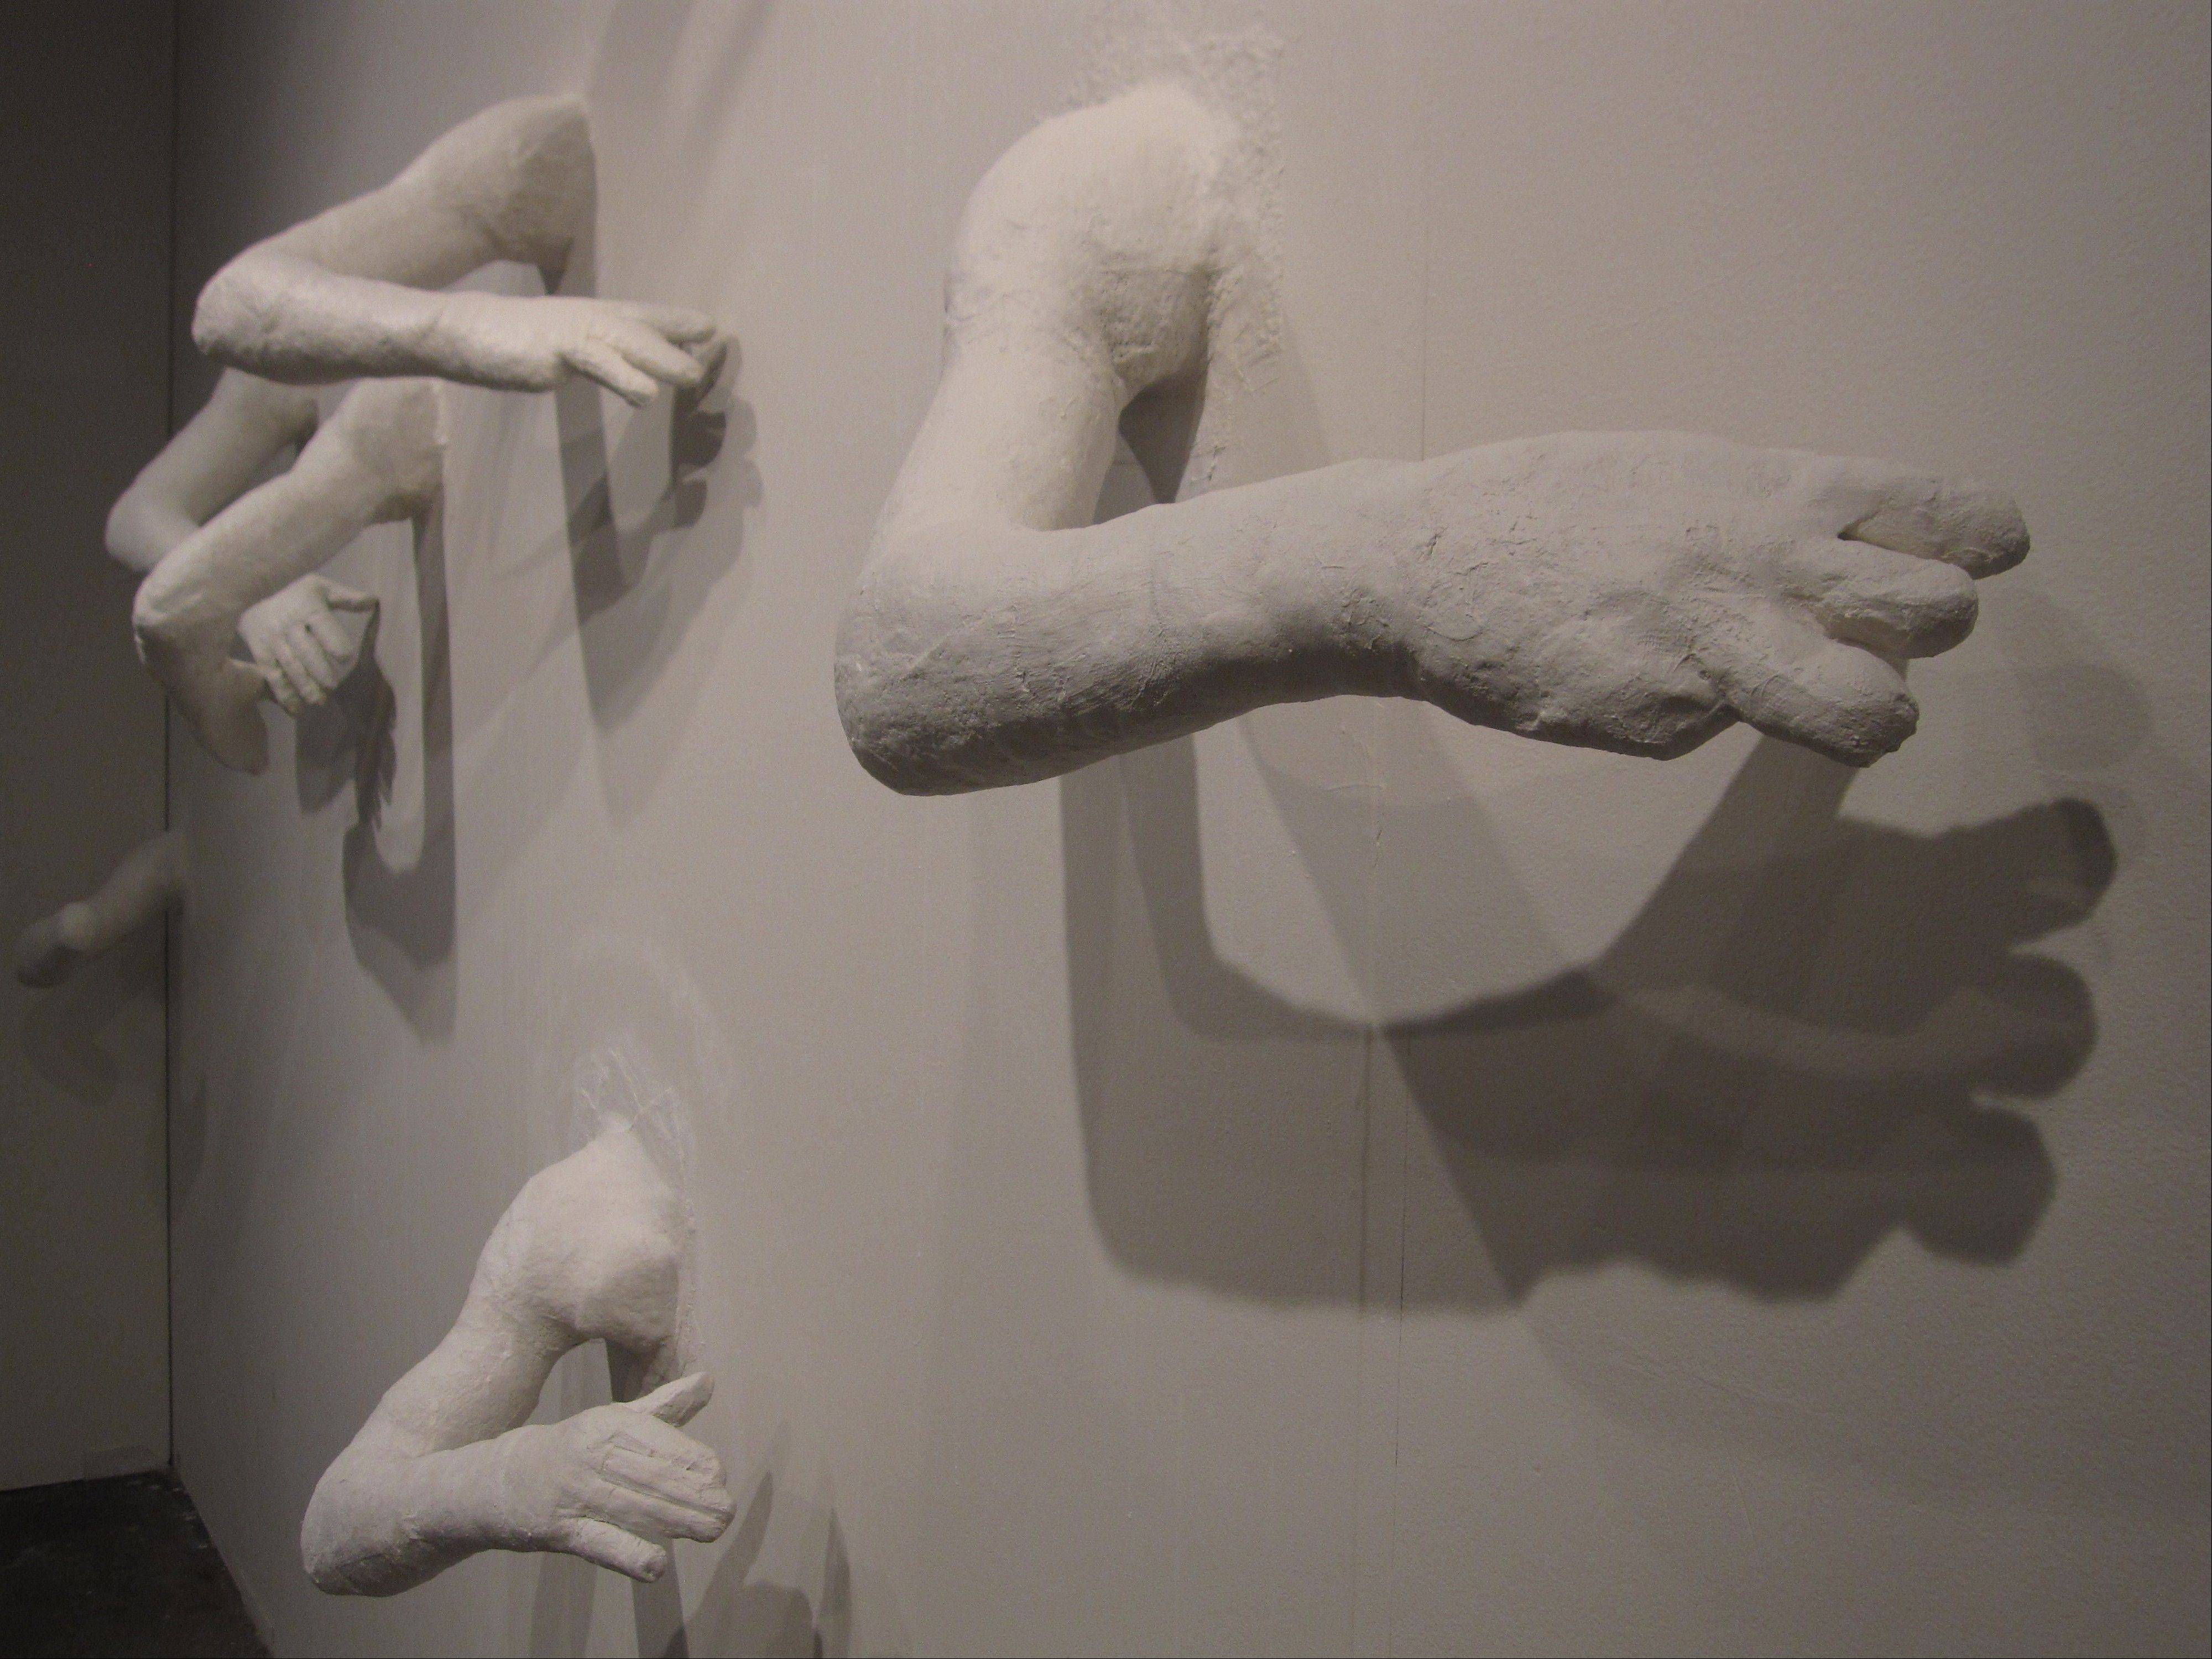 """They're Mine To Keep,"" a plaster installation piece by Army Reserves veteran Edgar Gonzalez Baeza, is part of the new ""Radical Vulnerability"" exhibit at the National Veterans Art Museum in Chicago."